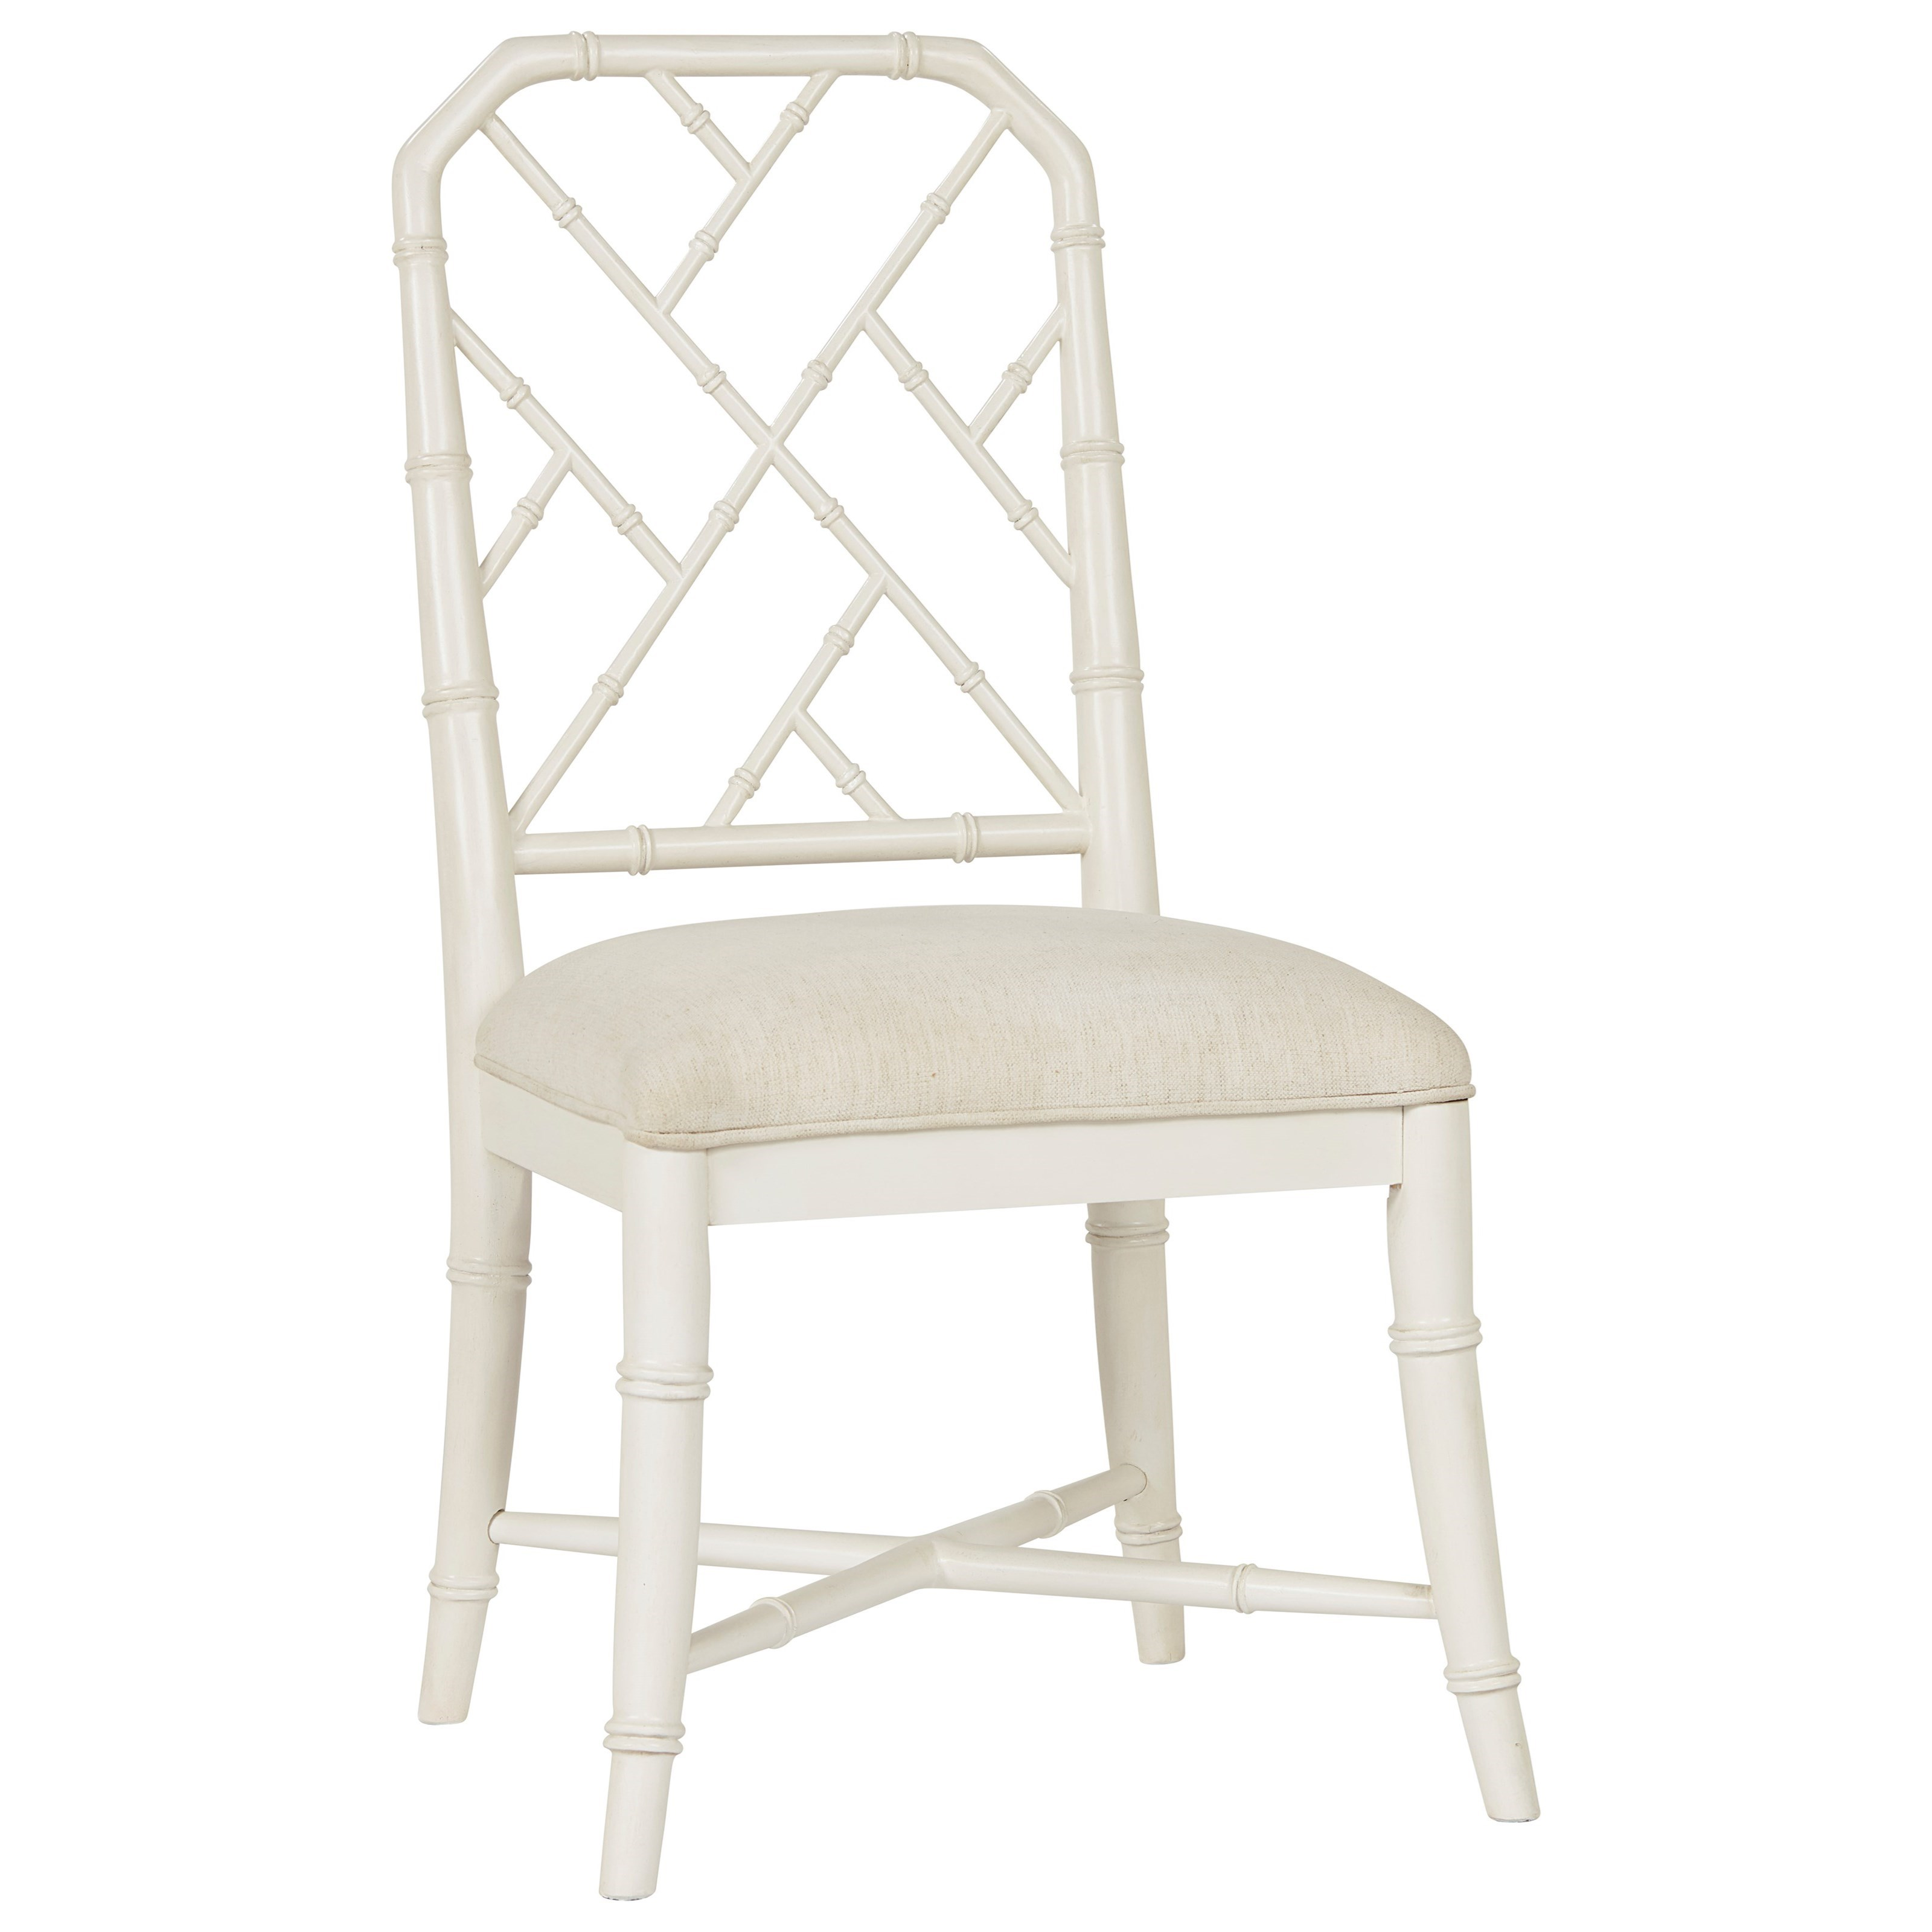 Coastal Living Home - Getaway Side Chair by Universal at Baer's Furniture